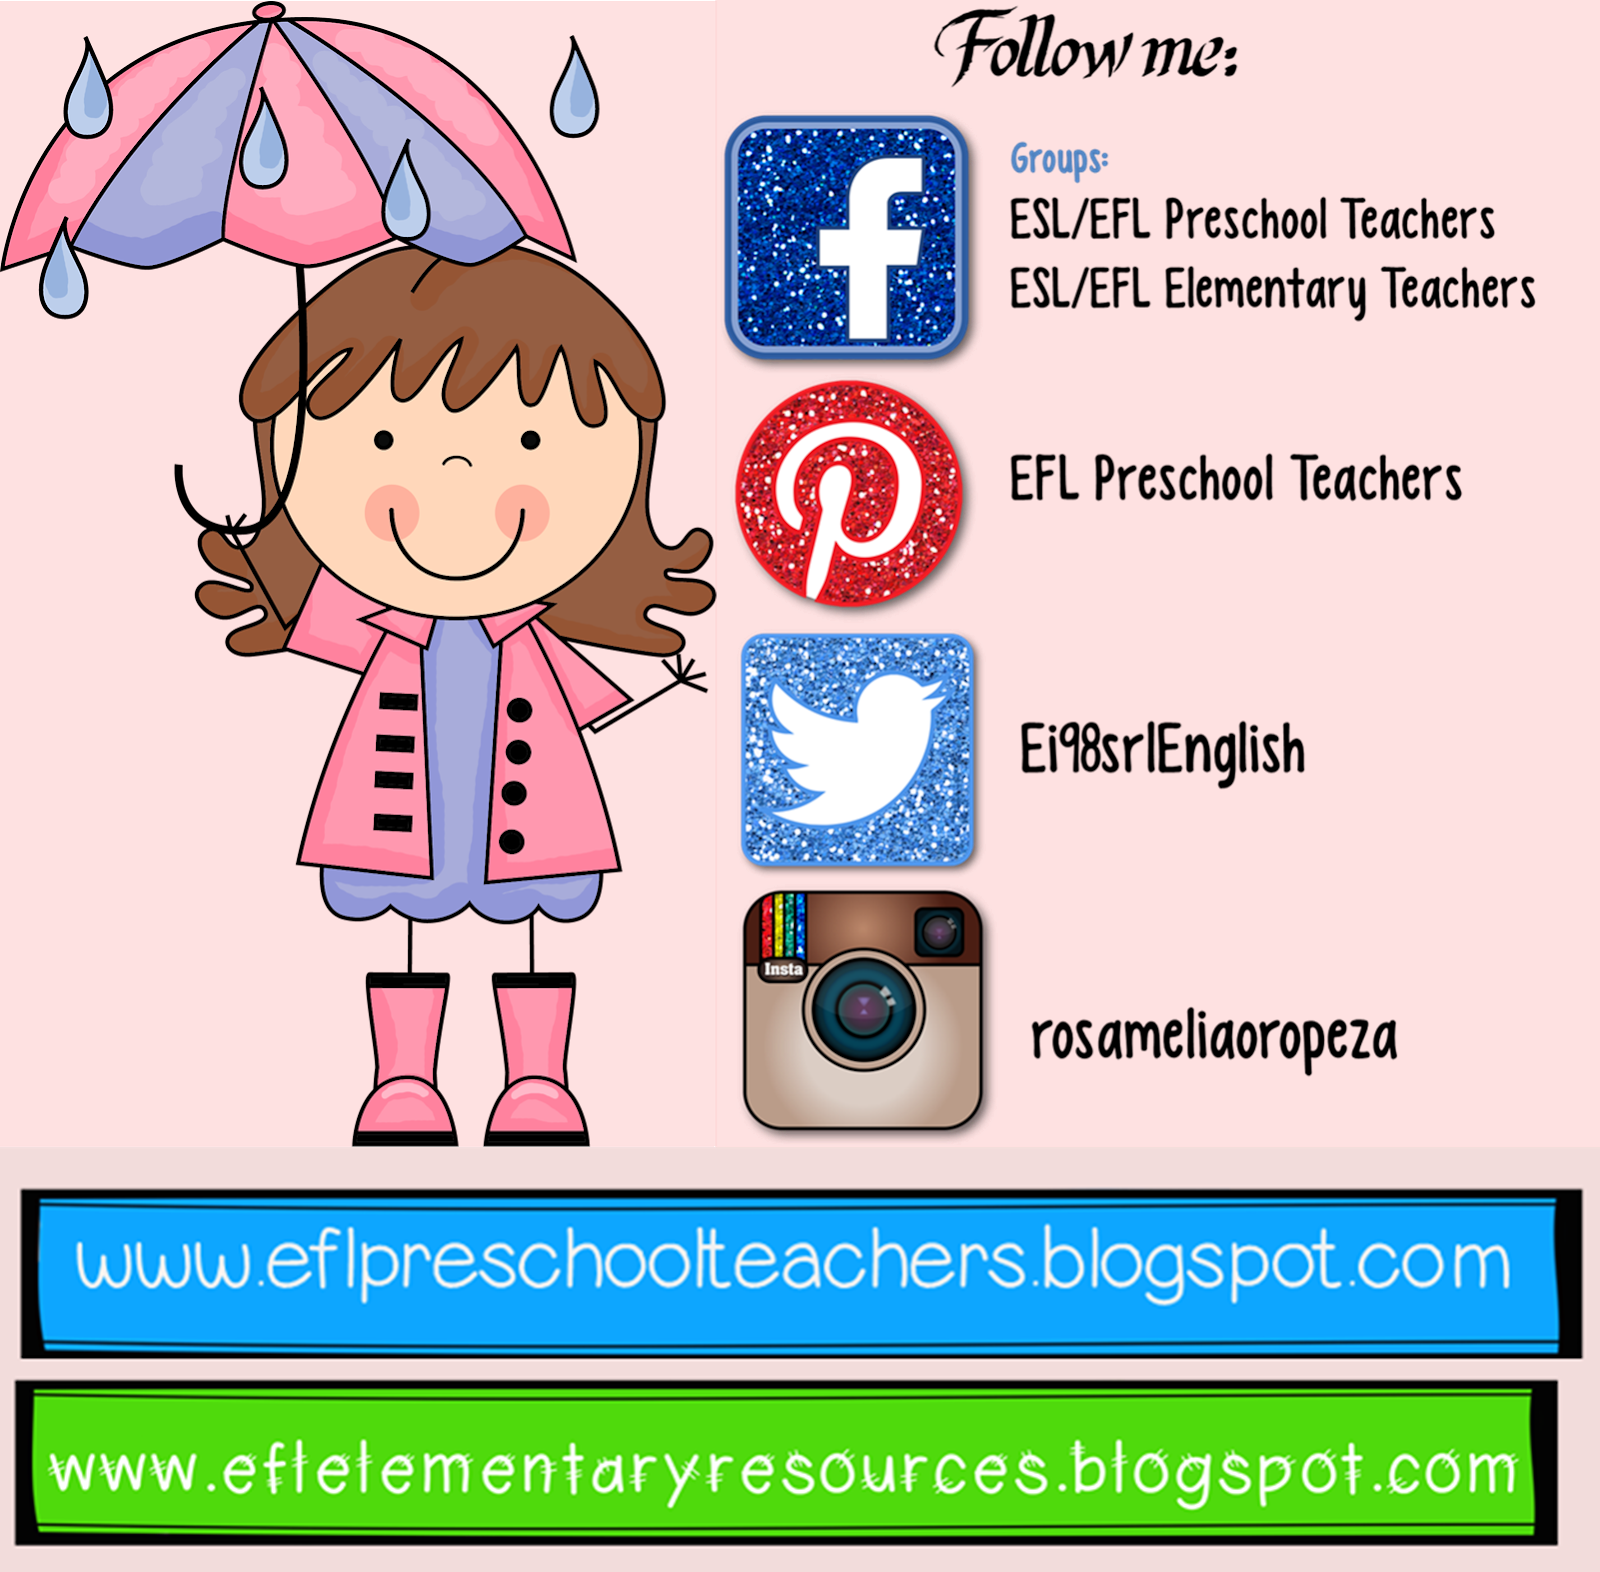 Number 1 clipart one more thing. Efl elementary teachers esl